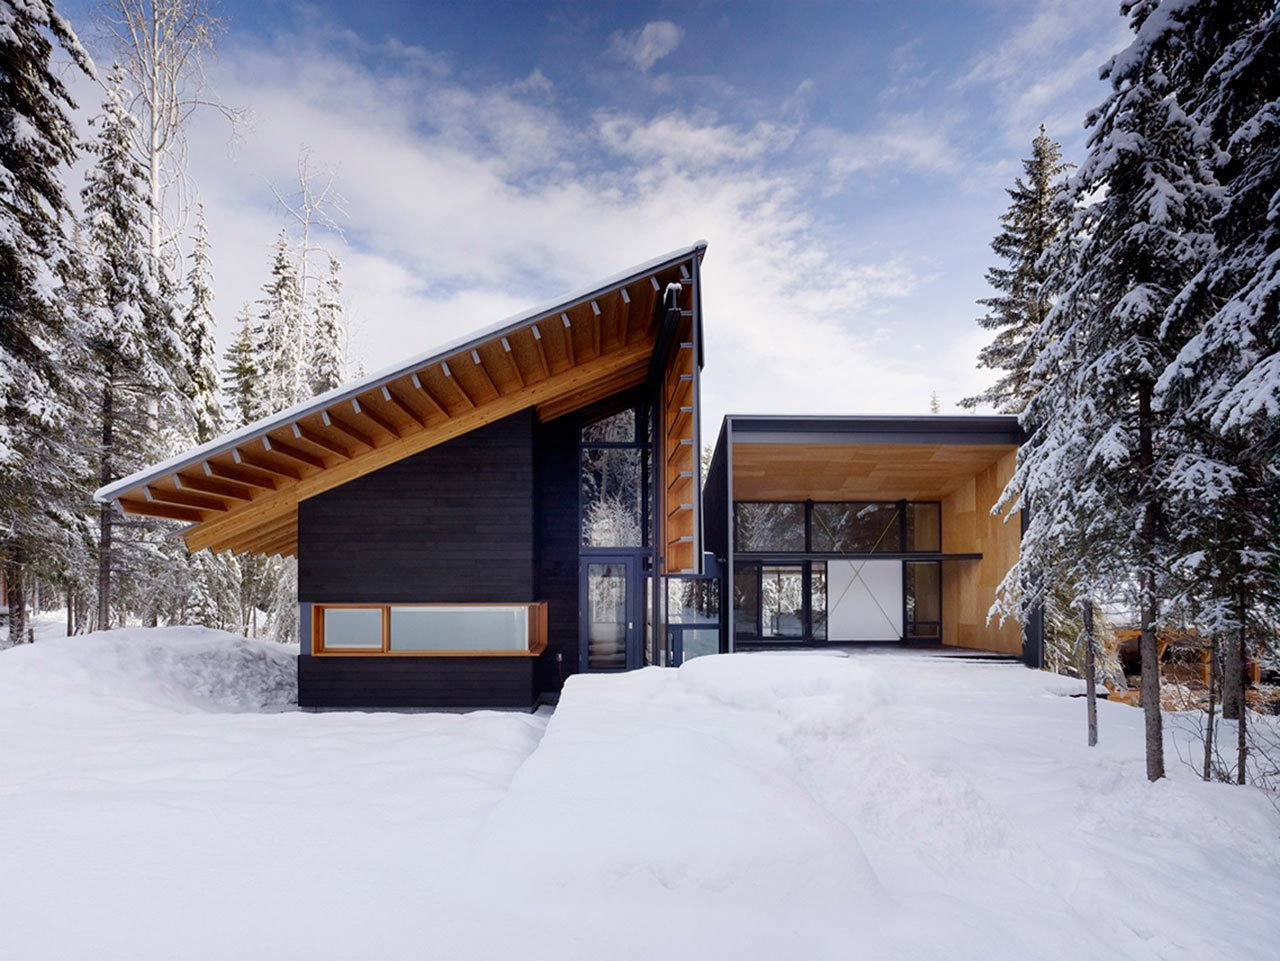 Located adjacent to Kicking Horse ski resort in the Canadian Rocky Mountains, the Kicking Horse Residence was designed by Bohlin Cywinski Jackson as a family weekend getaway built for some amazing skiing.